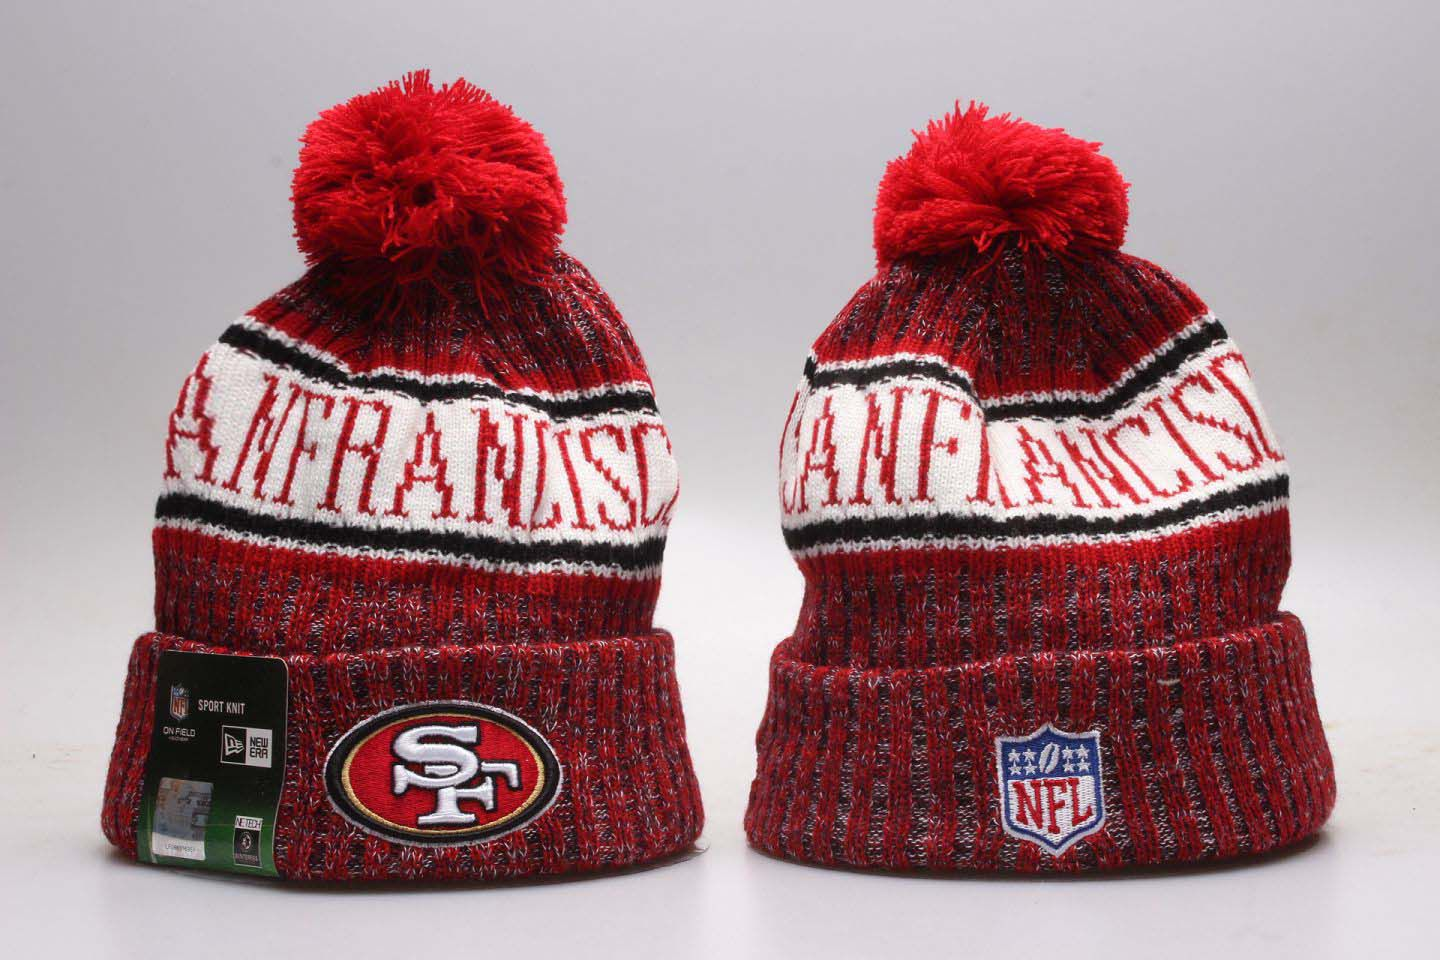 NFL San Francisco 49ers Beanie hot hat3